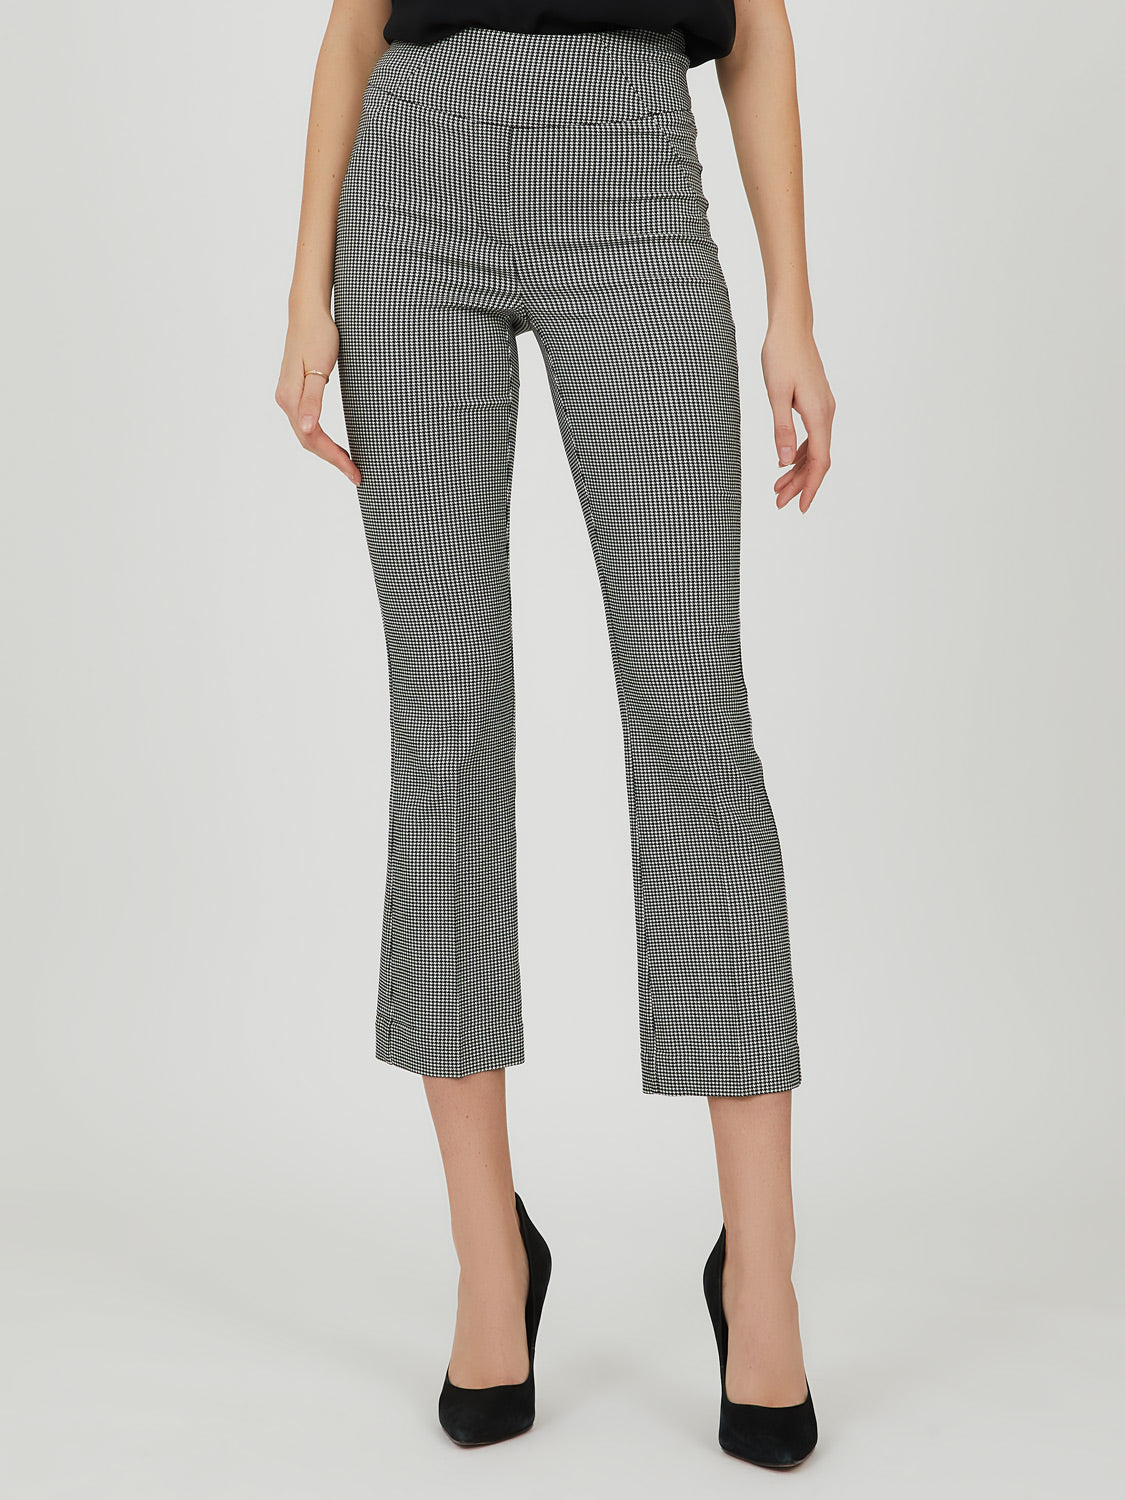 Wide Waist Houndstooth Plaid Crop Pant